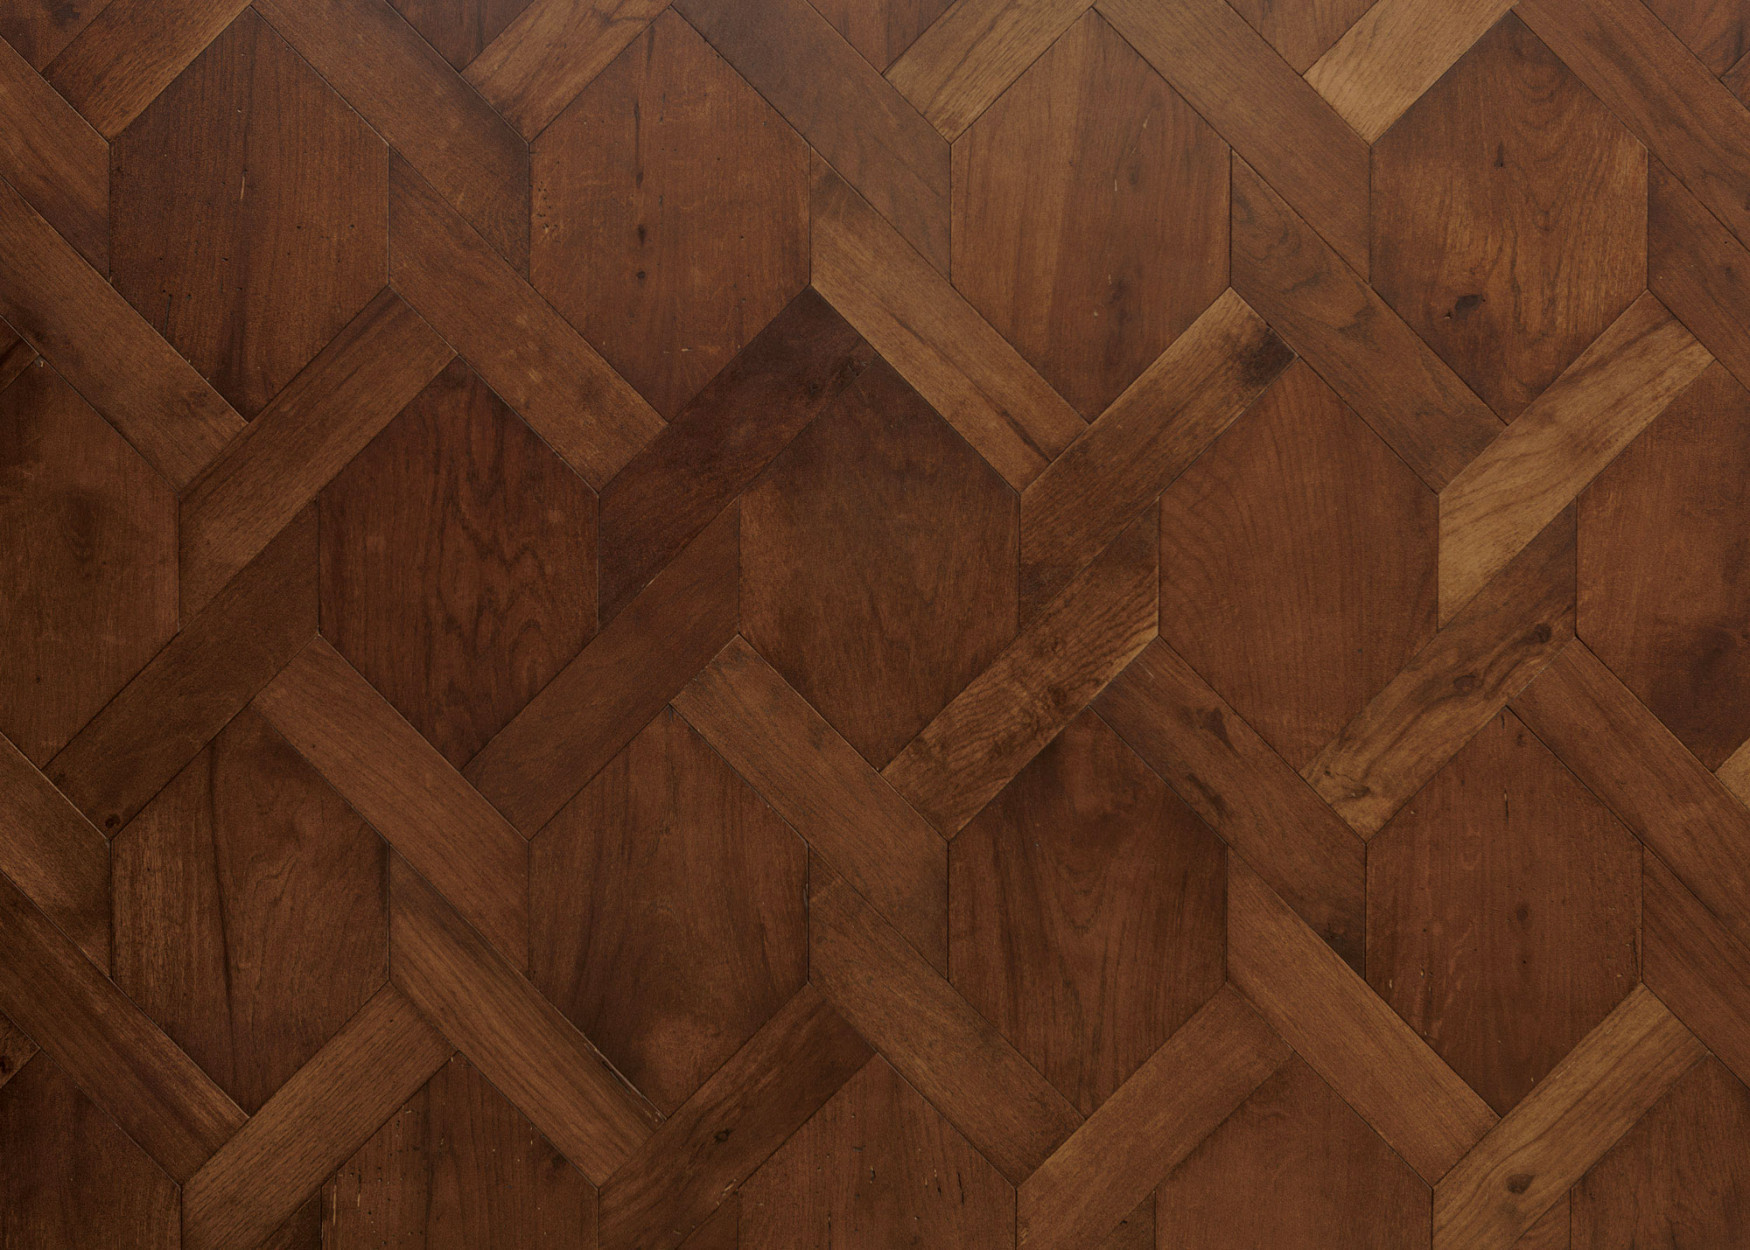 element7-reclaimed-brown-oak-mansion-weave-retoched-5